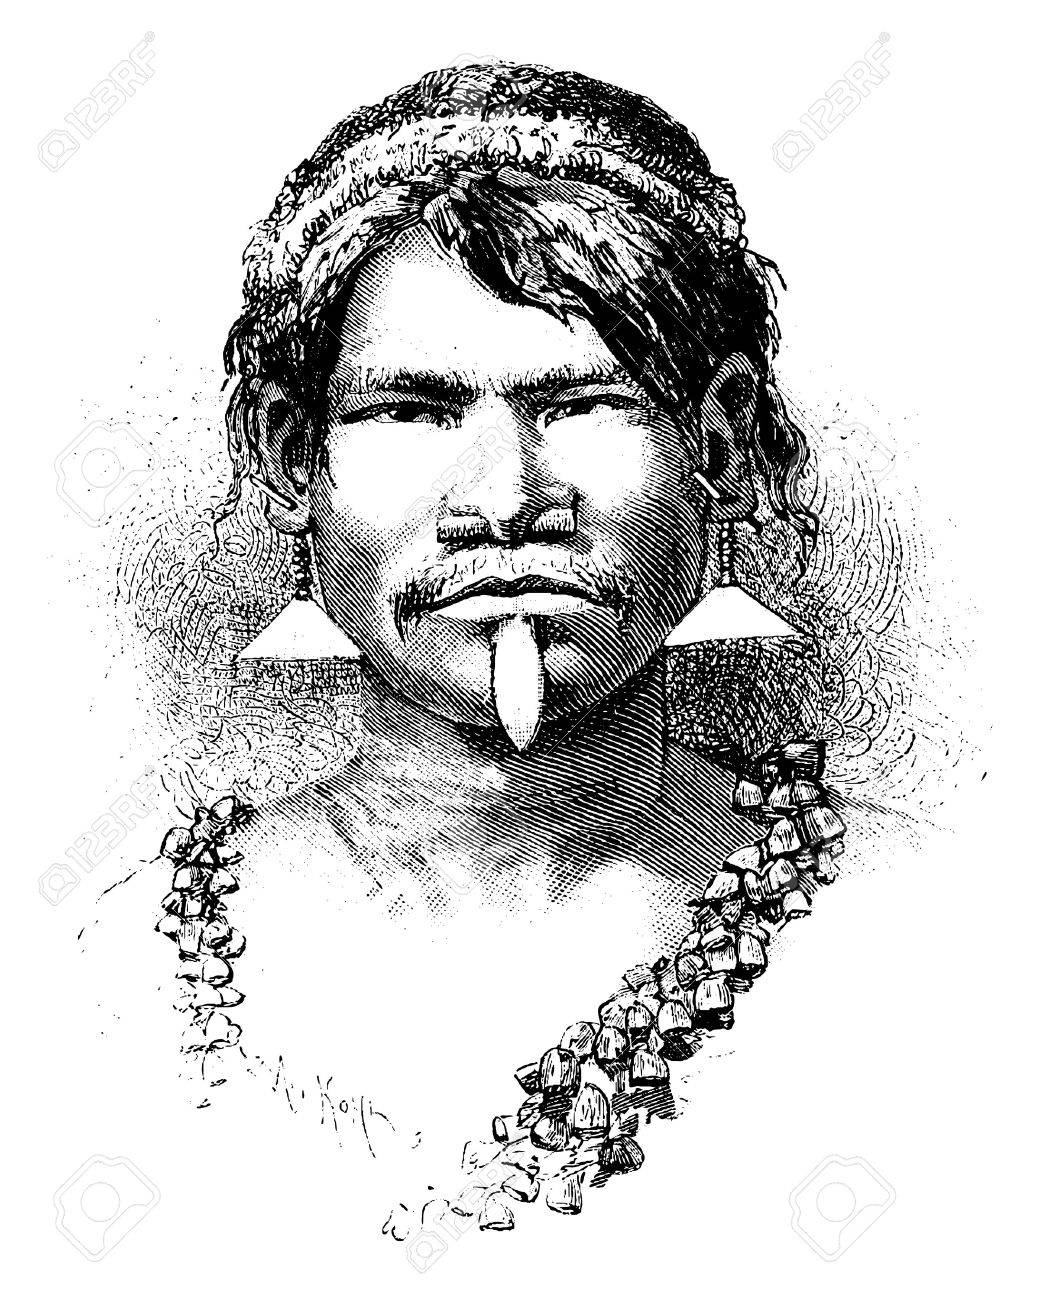 Carijona Indian of Amazonas, Brazil, drawing by Riou from a photograph, vintage engraved illustration. Le Tour du Monde, Travel Journal, 1881 - 37387048